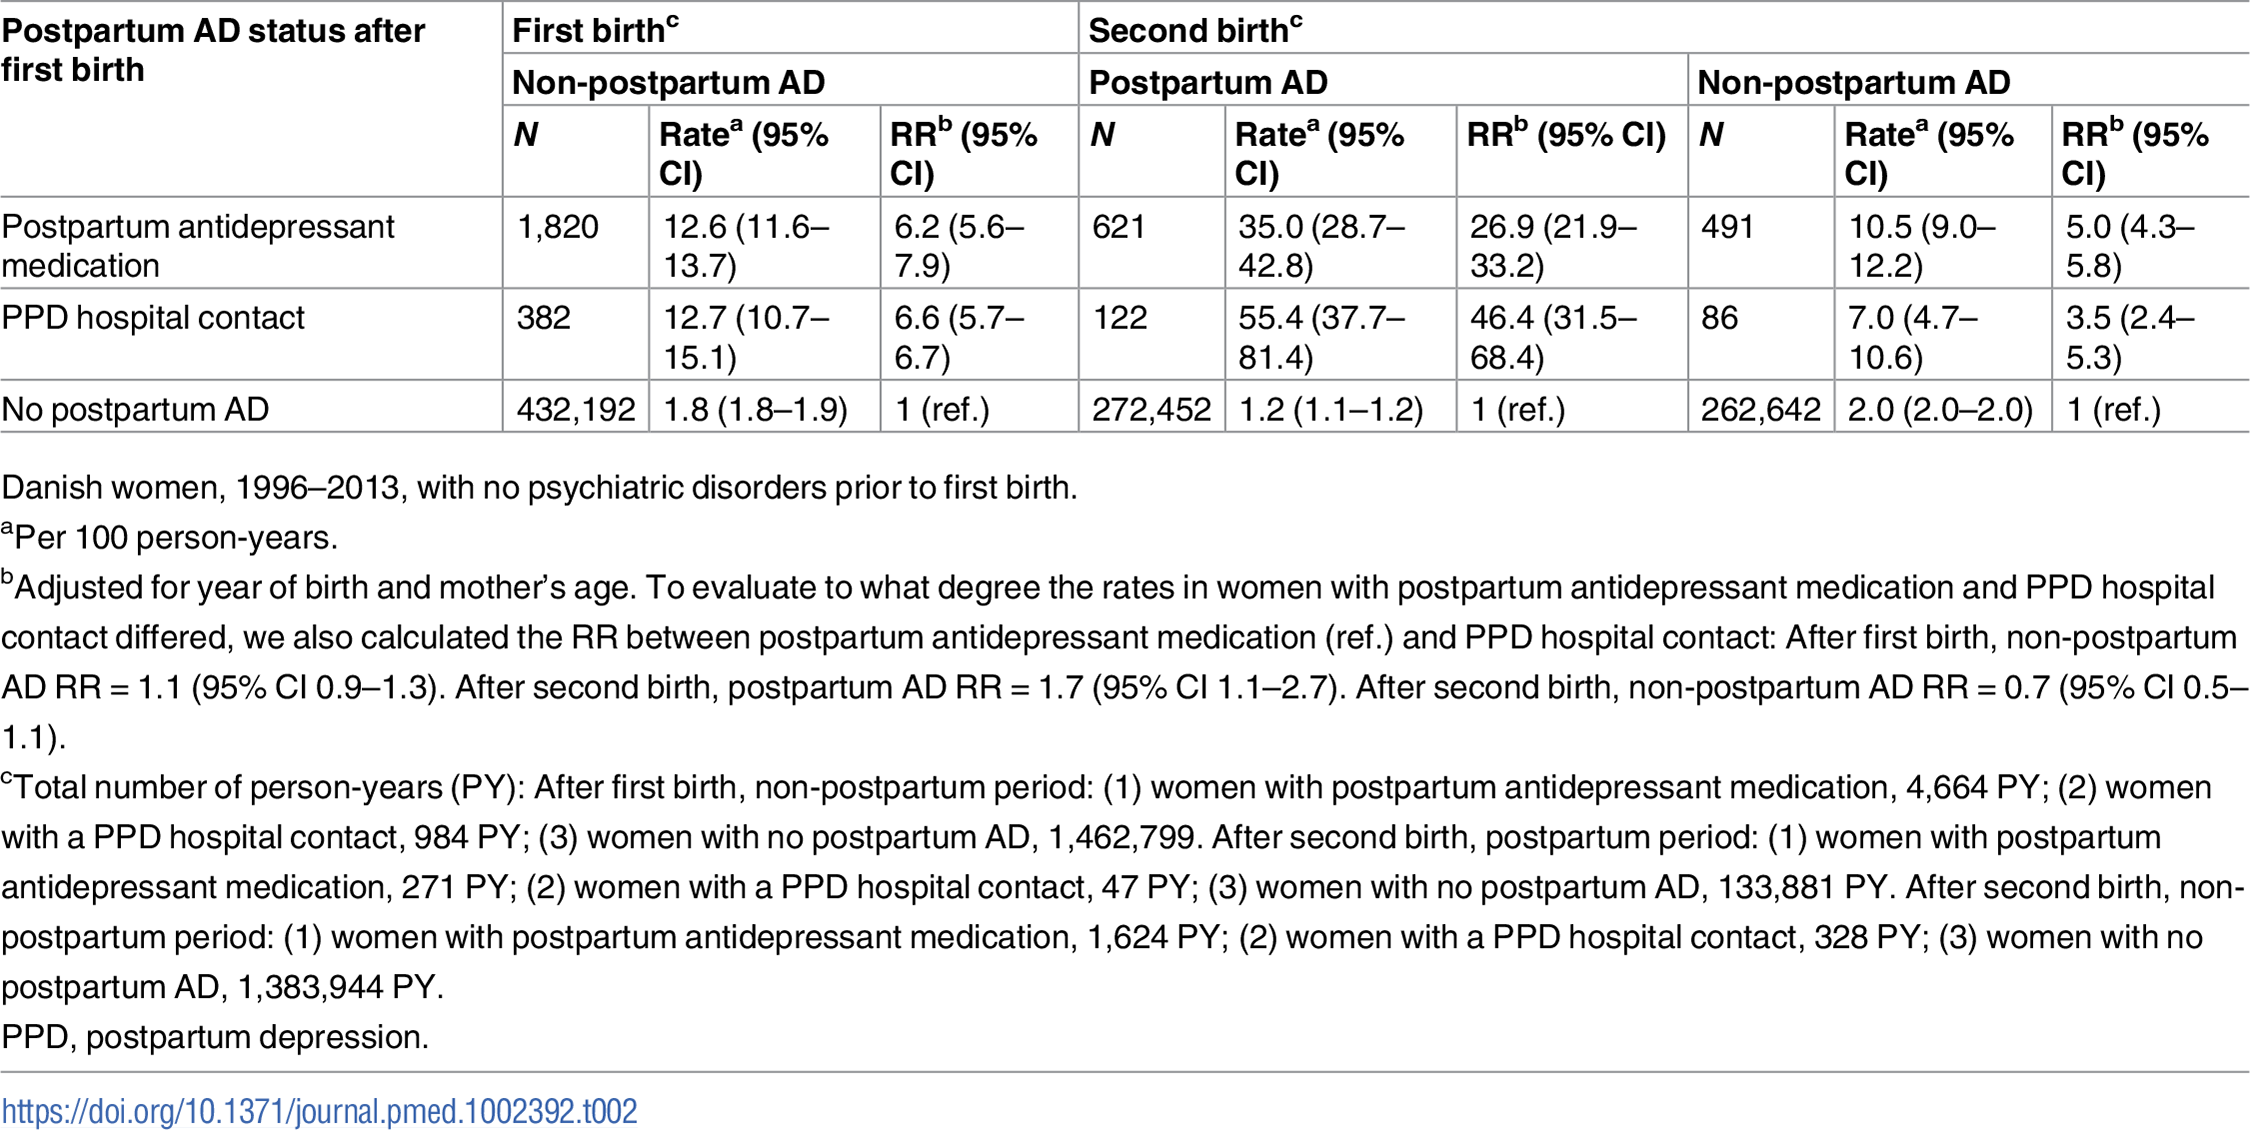 Rates and rate ratios (RRs) of non-postpartum and postpartum affective disorder (AD) after first and second birth depending on postpartum AD status after first birth.